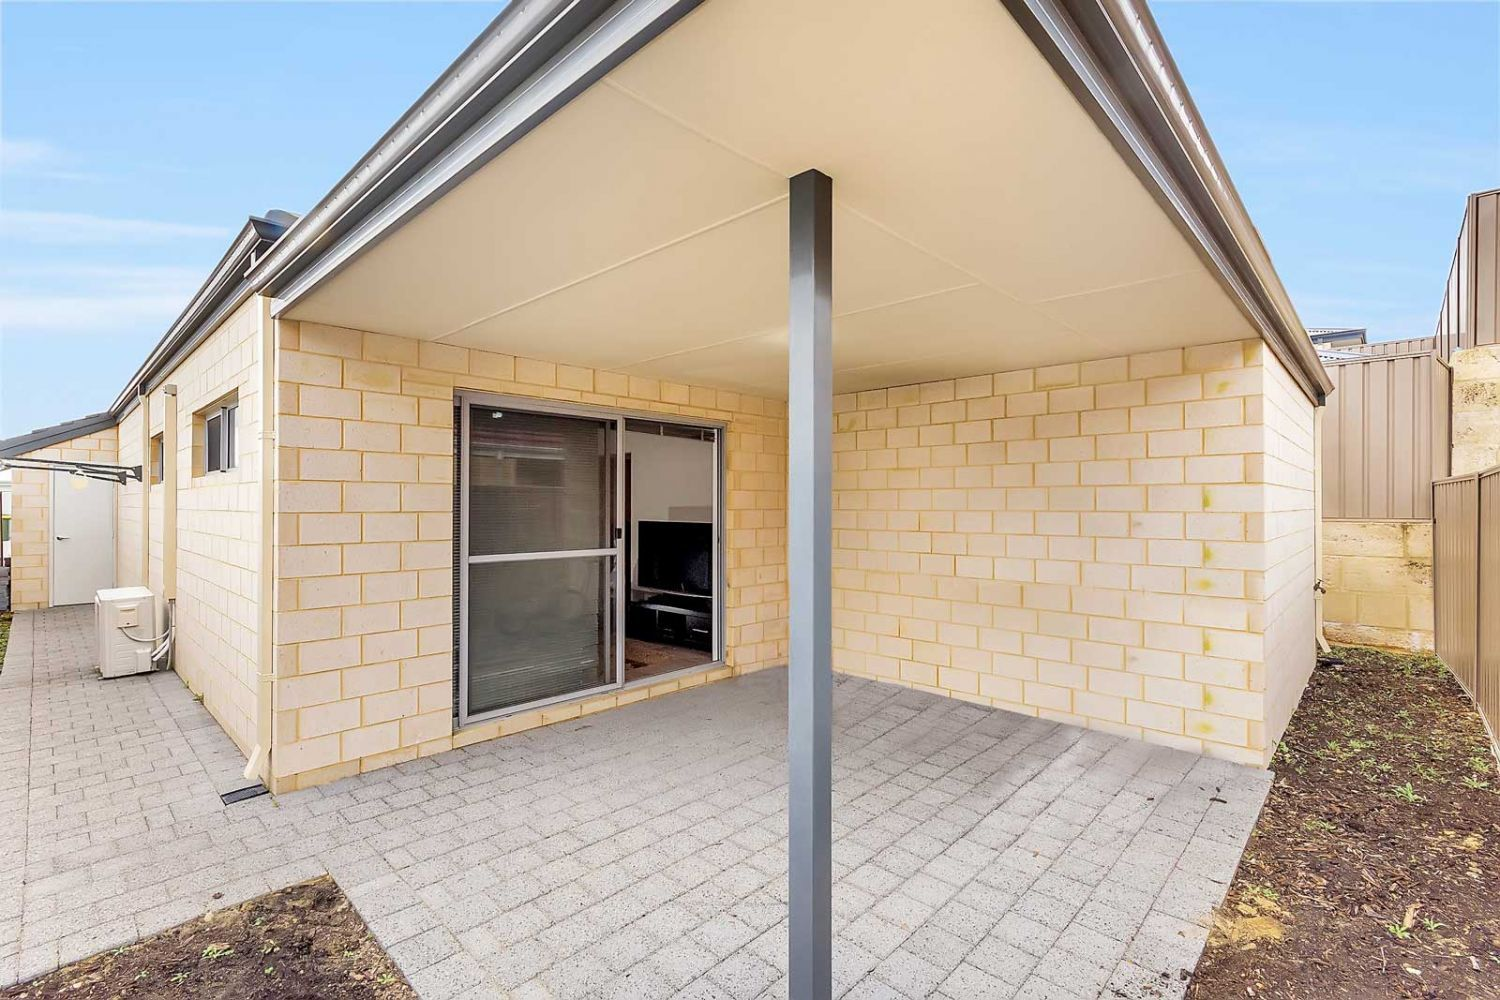 Exceptional Value In Landsdale Best Deal in Landsdale